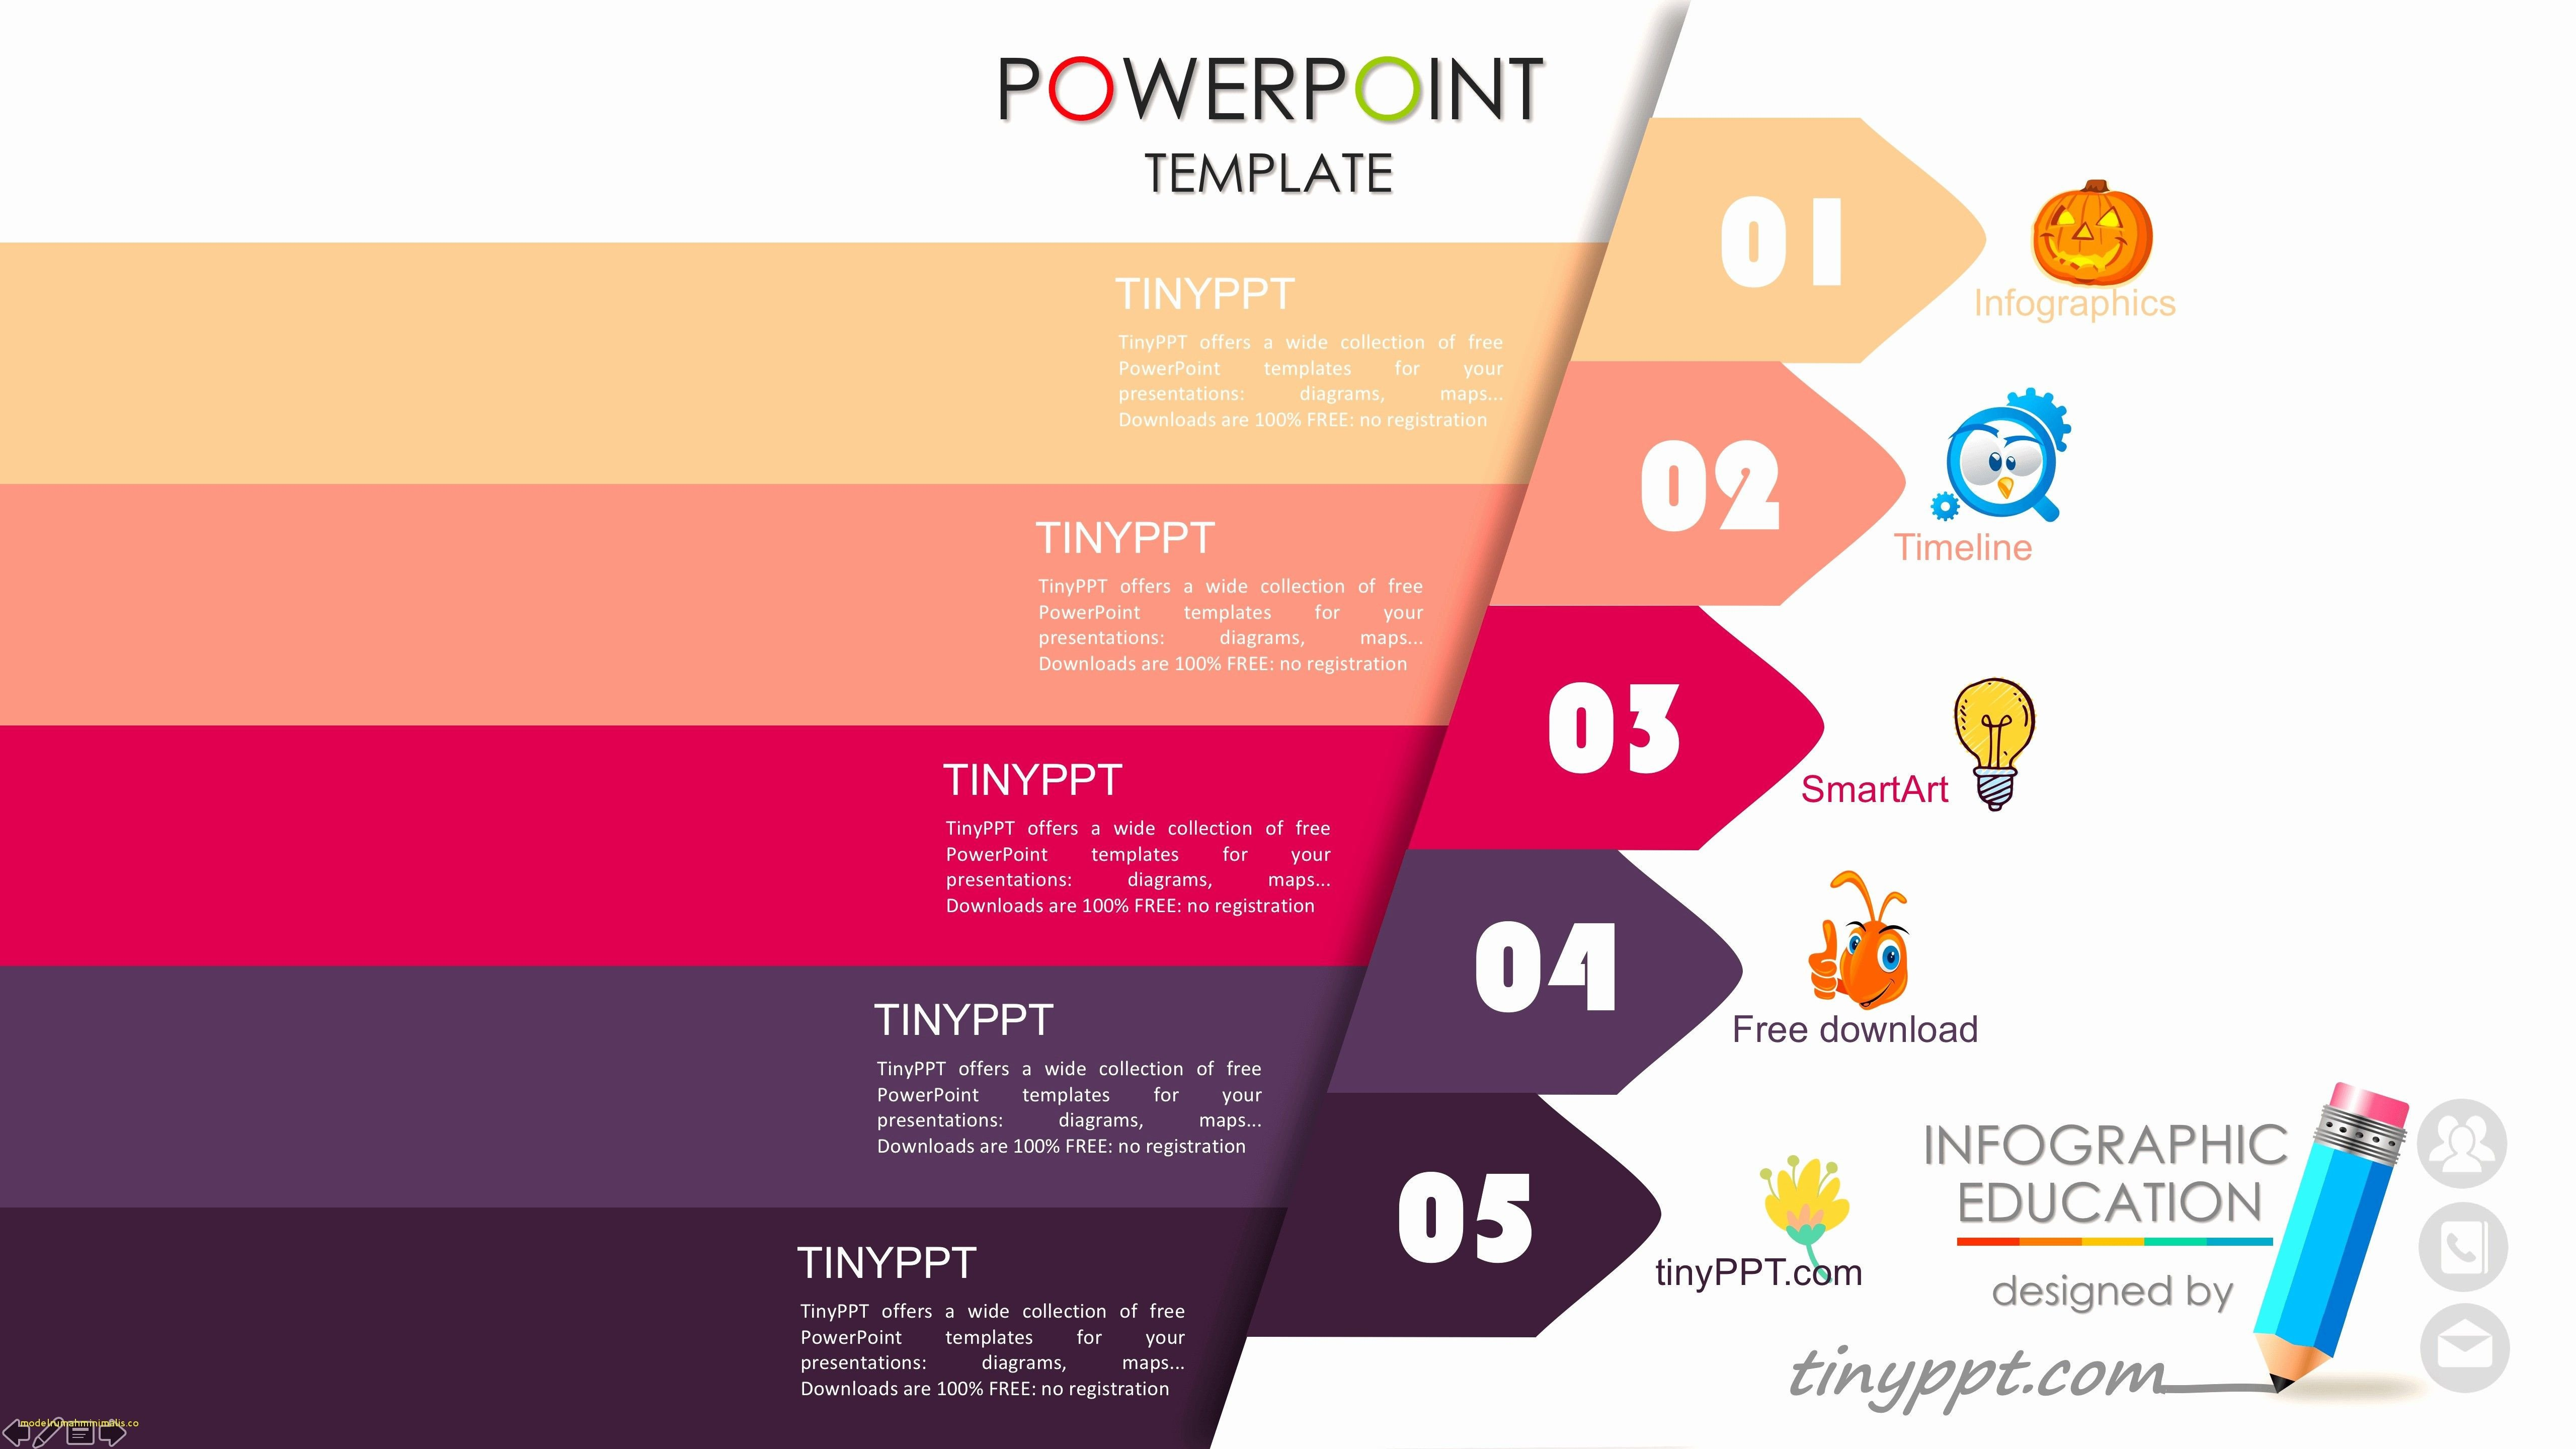 Free Templates for Powerpoint Lovely Awesome Powerpoint Templates